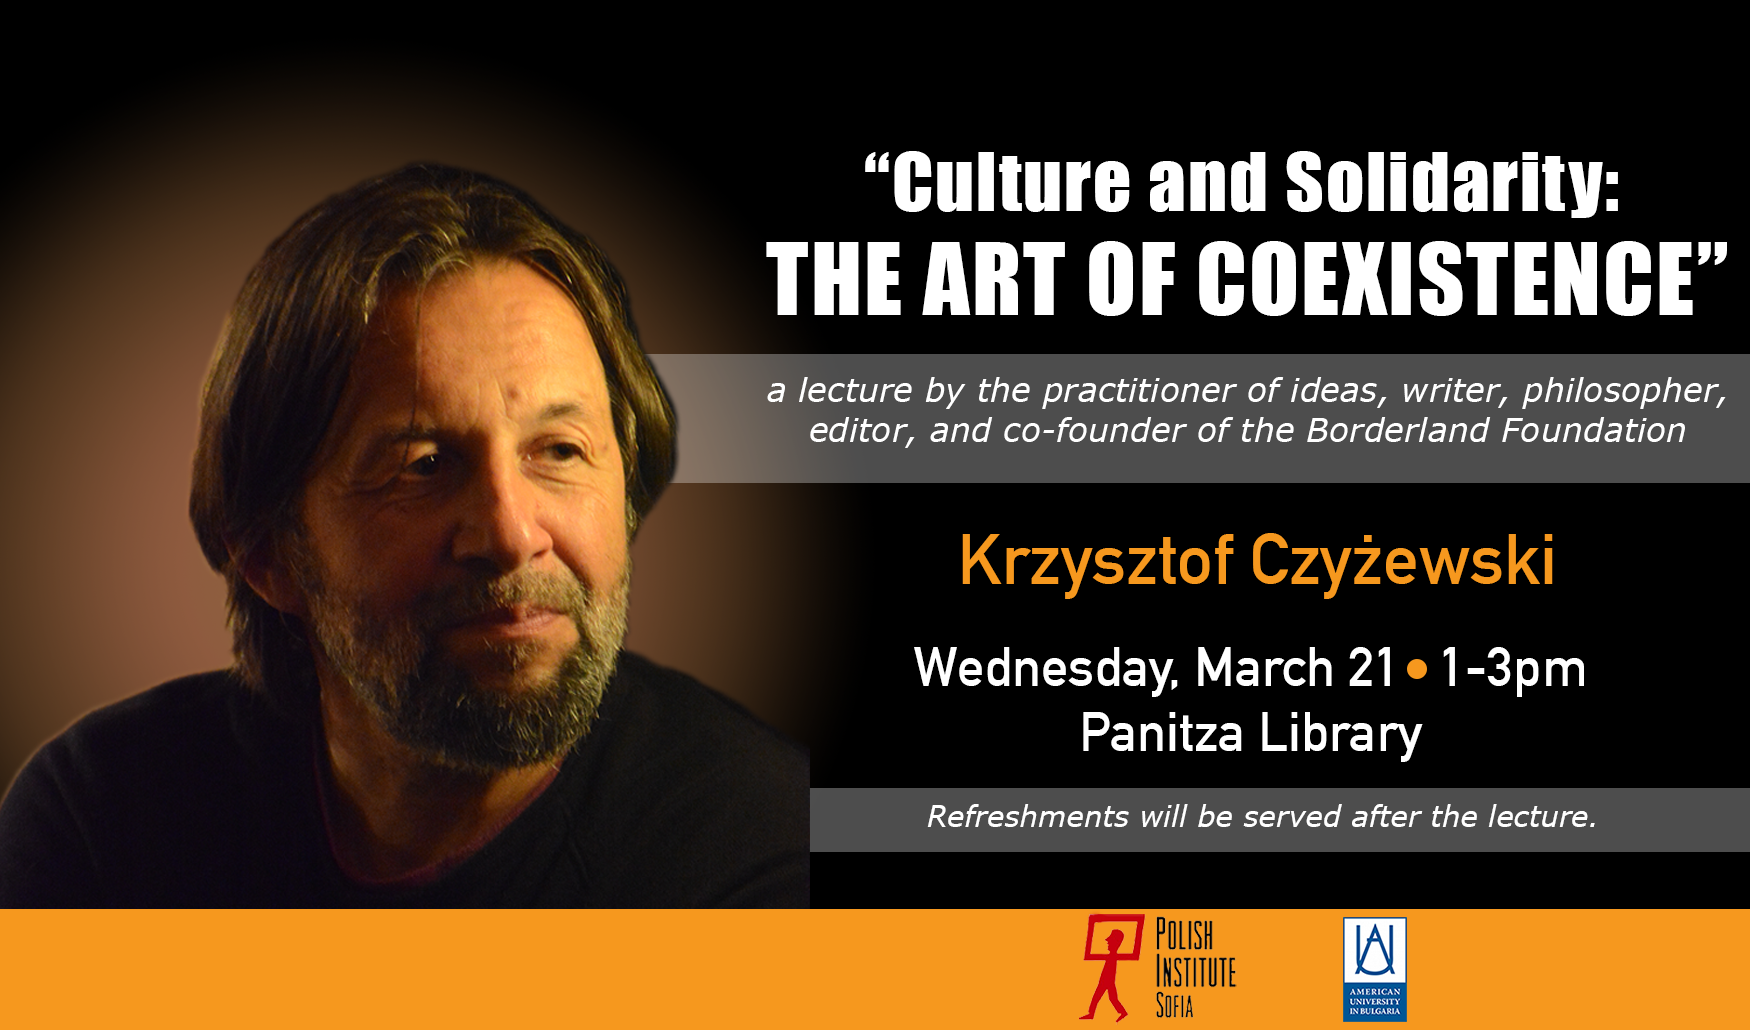 Lecture: Culture and Solidarity: The Art of Coexistence by Krzysztof Czyżewski